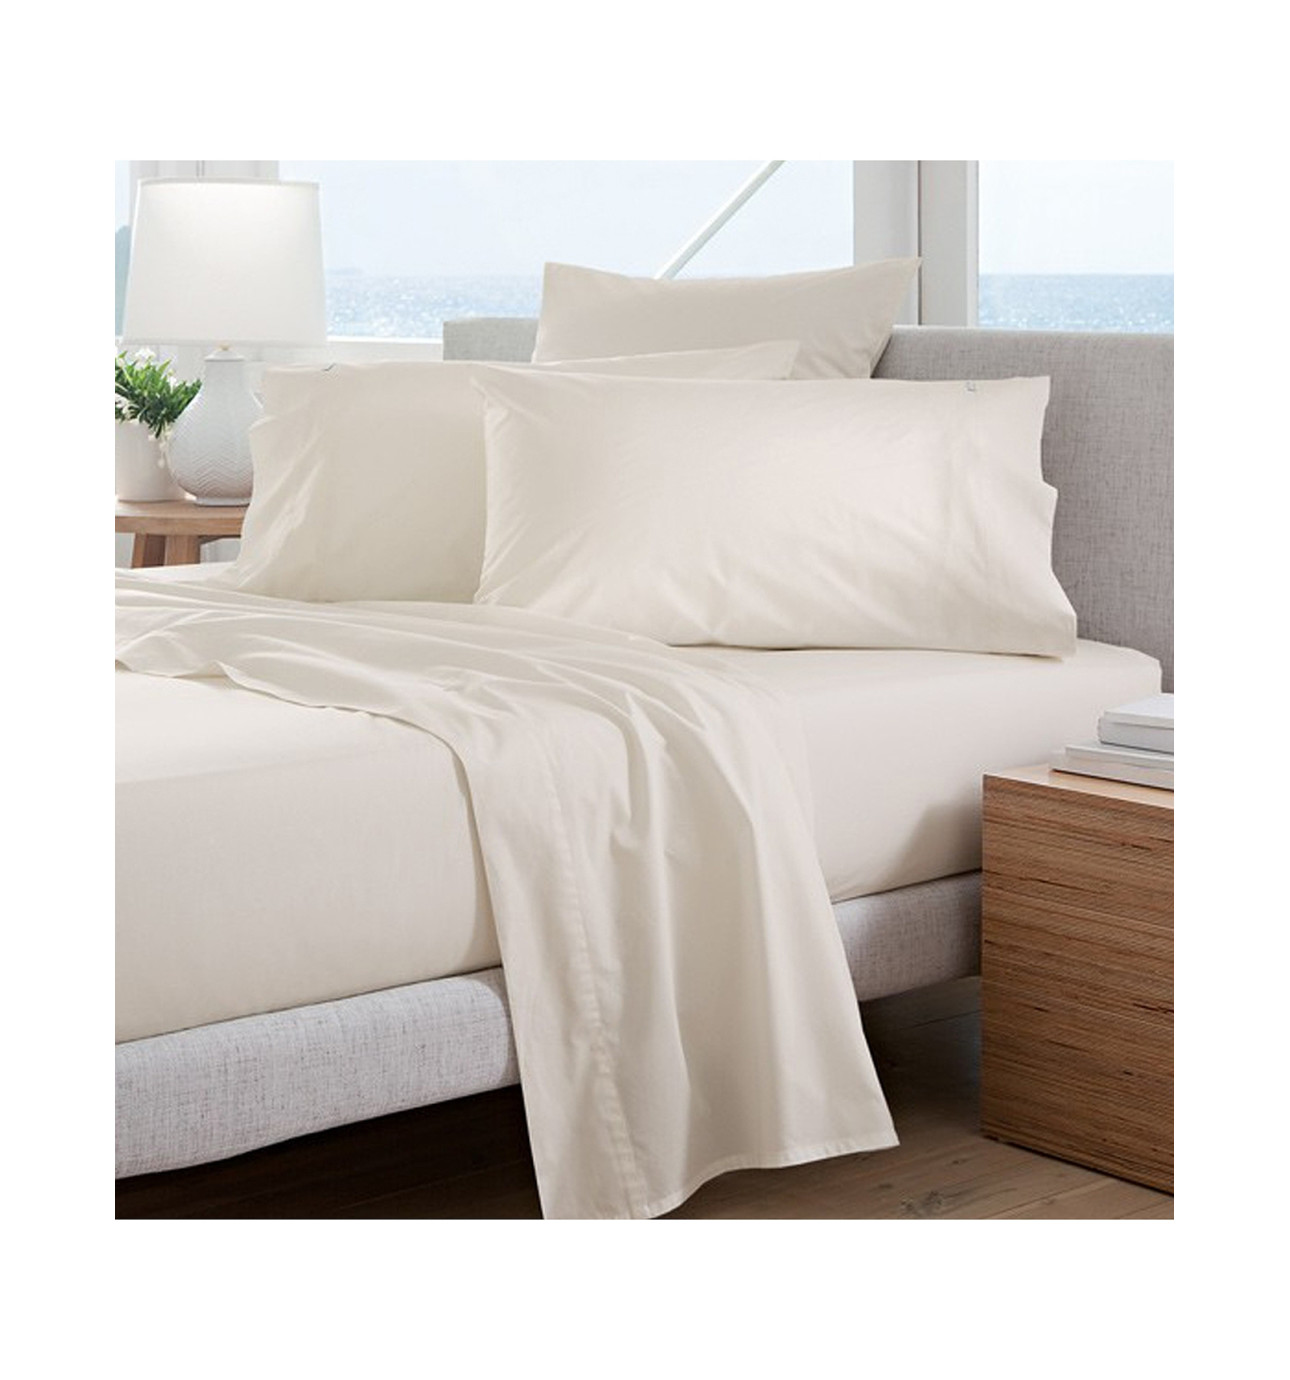 Be the first to review percale t 180 classic queen size flat sheets - Classic Percale 300tc King Single Sheet Set 279 95